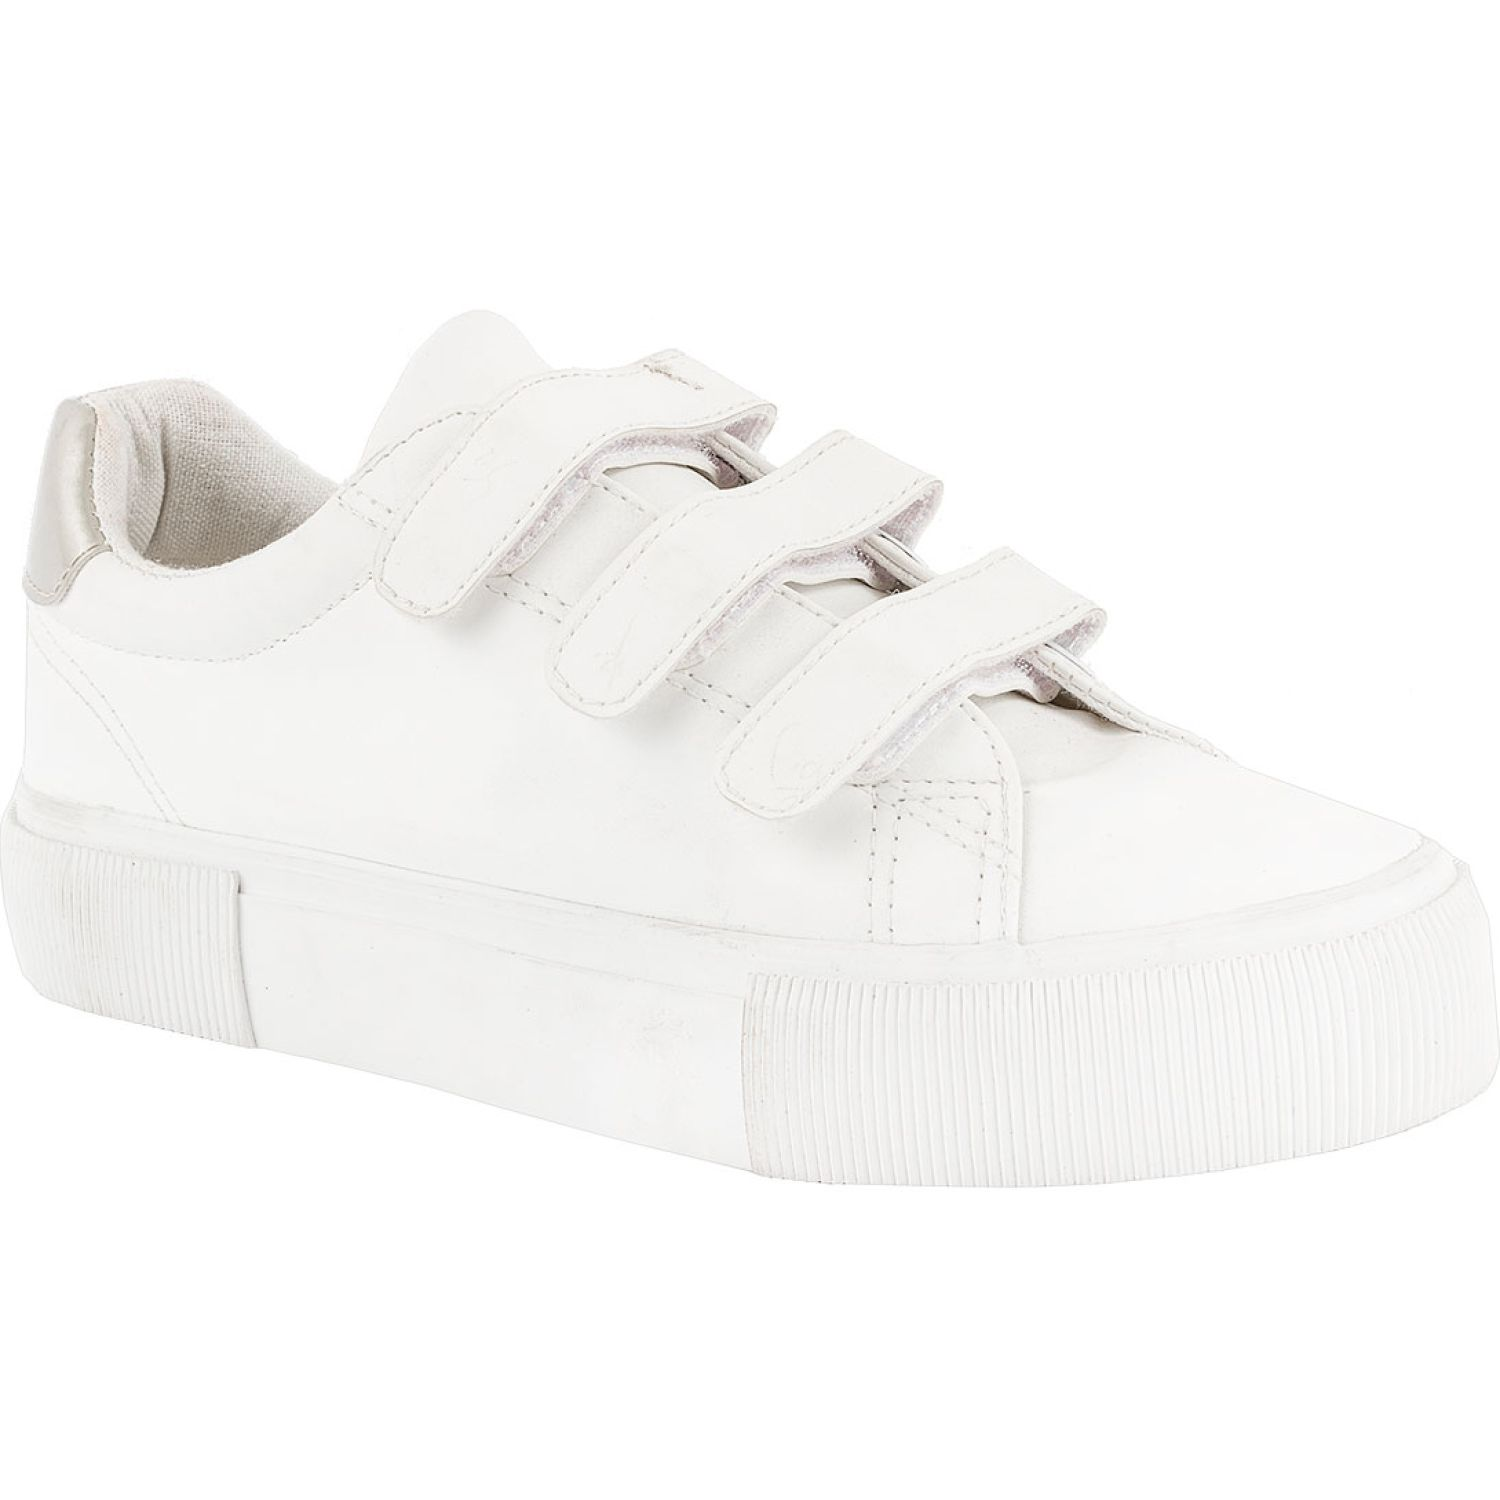 Impuls YAKELY07 Blanco Zapatillas Fashion